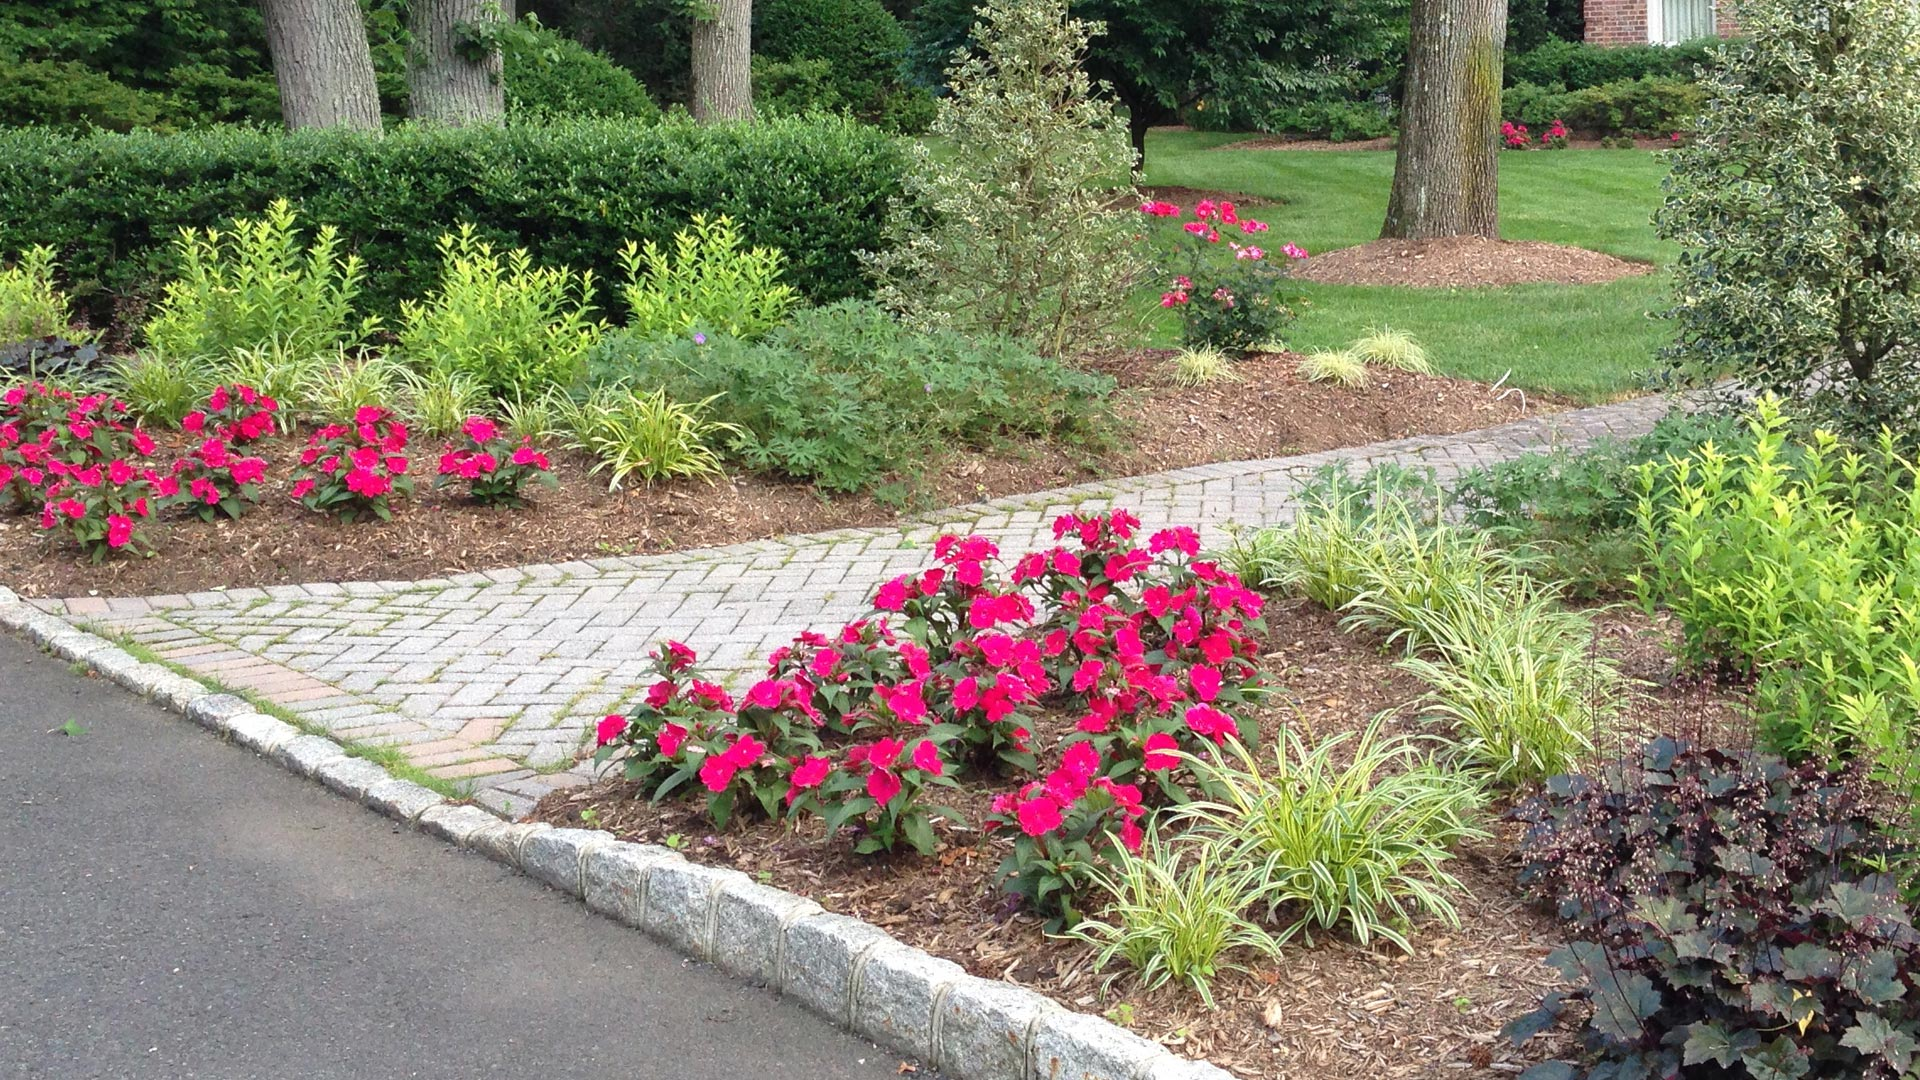 Professionally maintained landscape design at a residential property in Watchung.